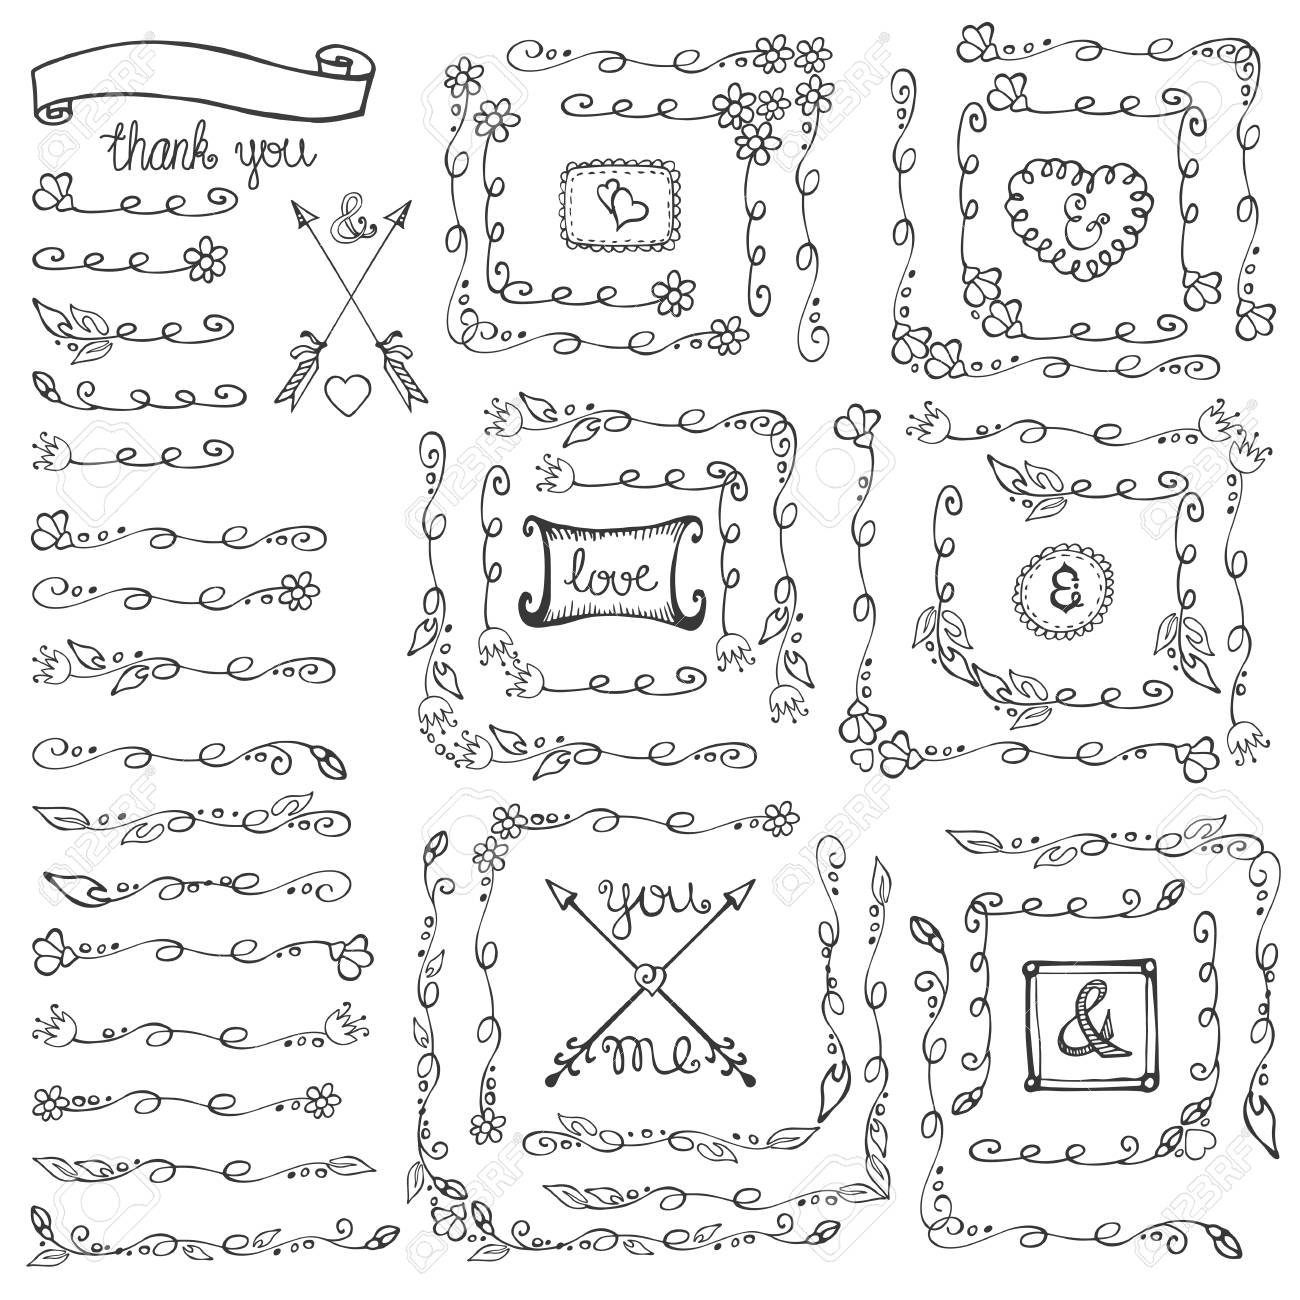 Doodles linear borderdividersframes and cornersflourish decor vector doodles linear borderdividersframes and cornersflourish decor setr design stopboris Image collections